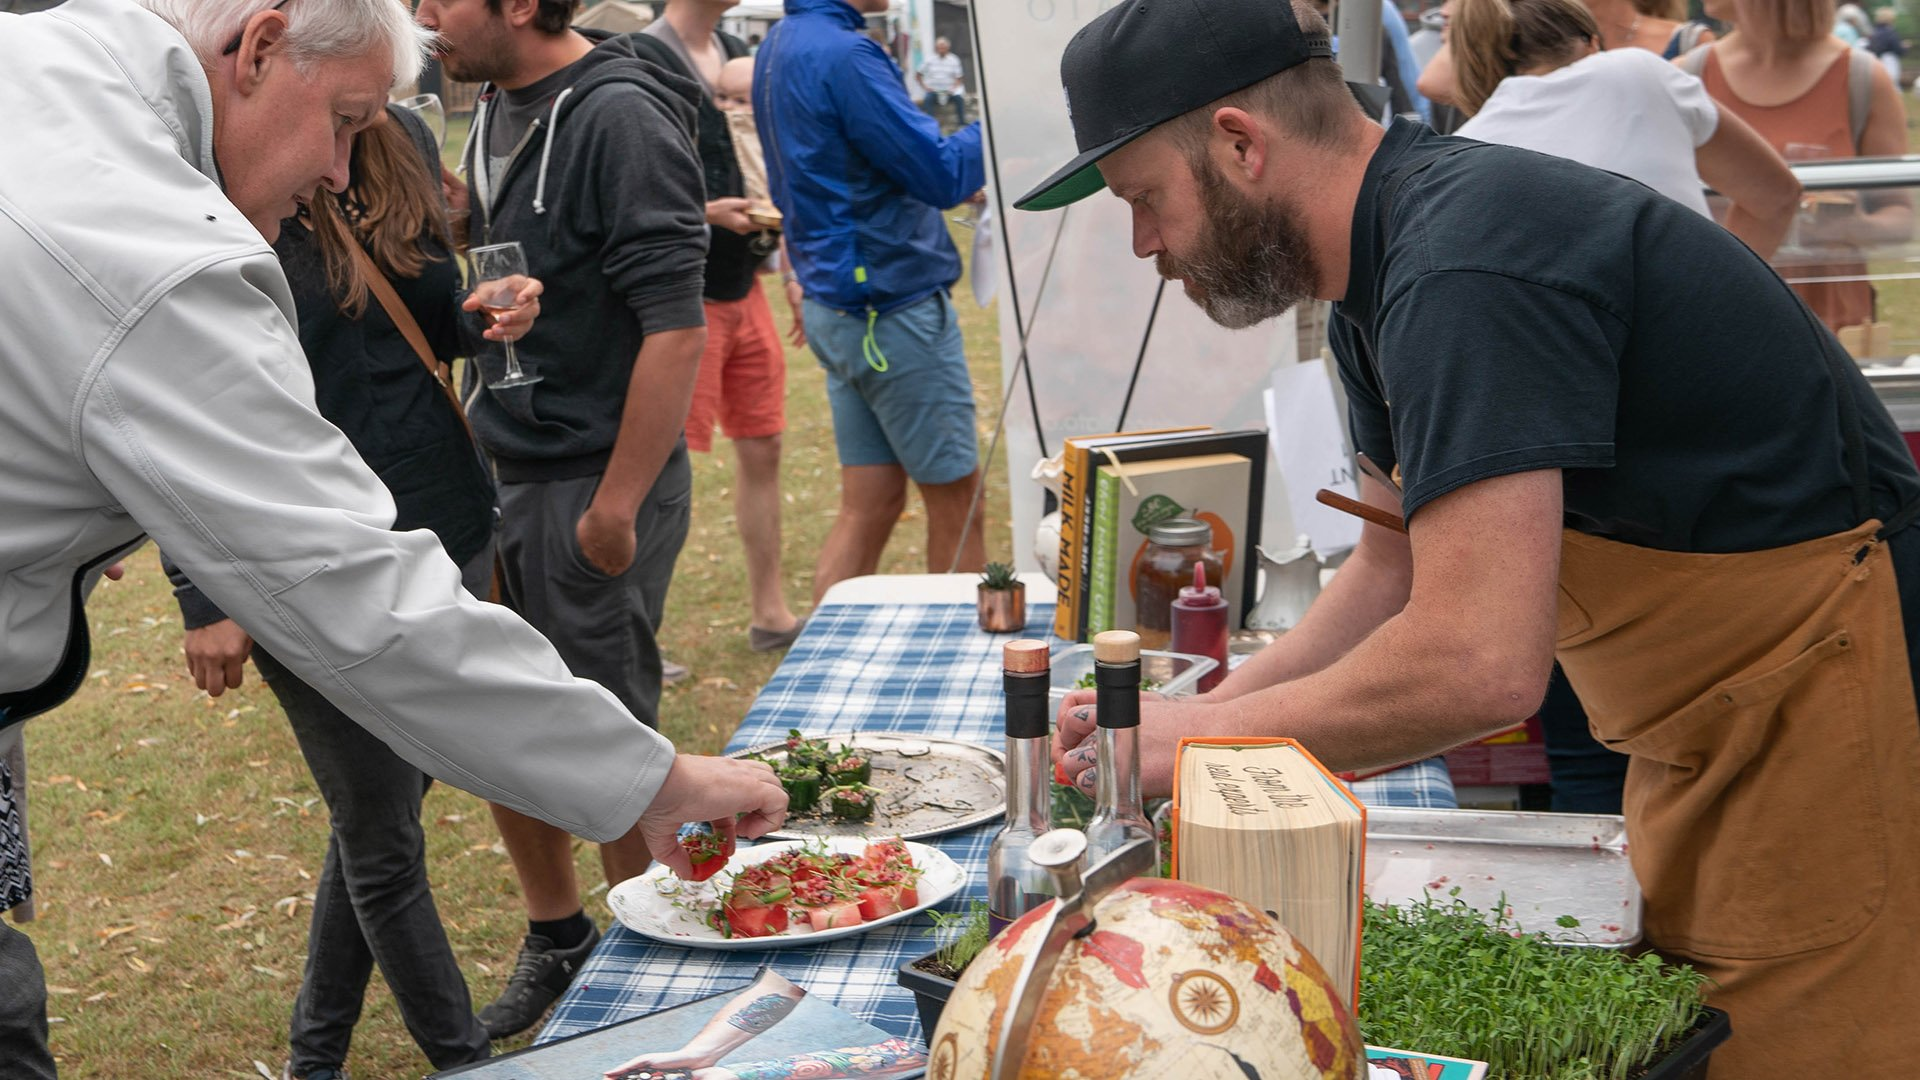 https://spatulamedia.ca/wp-content/uploads/2019/05/chef-james-at-feast-of-fields.jpg